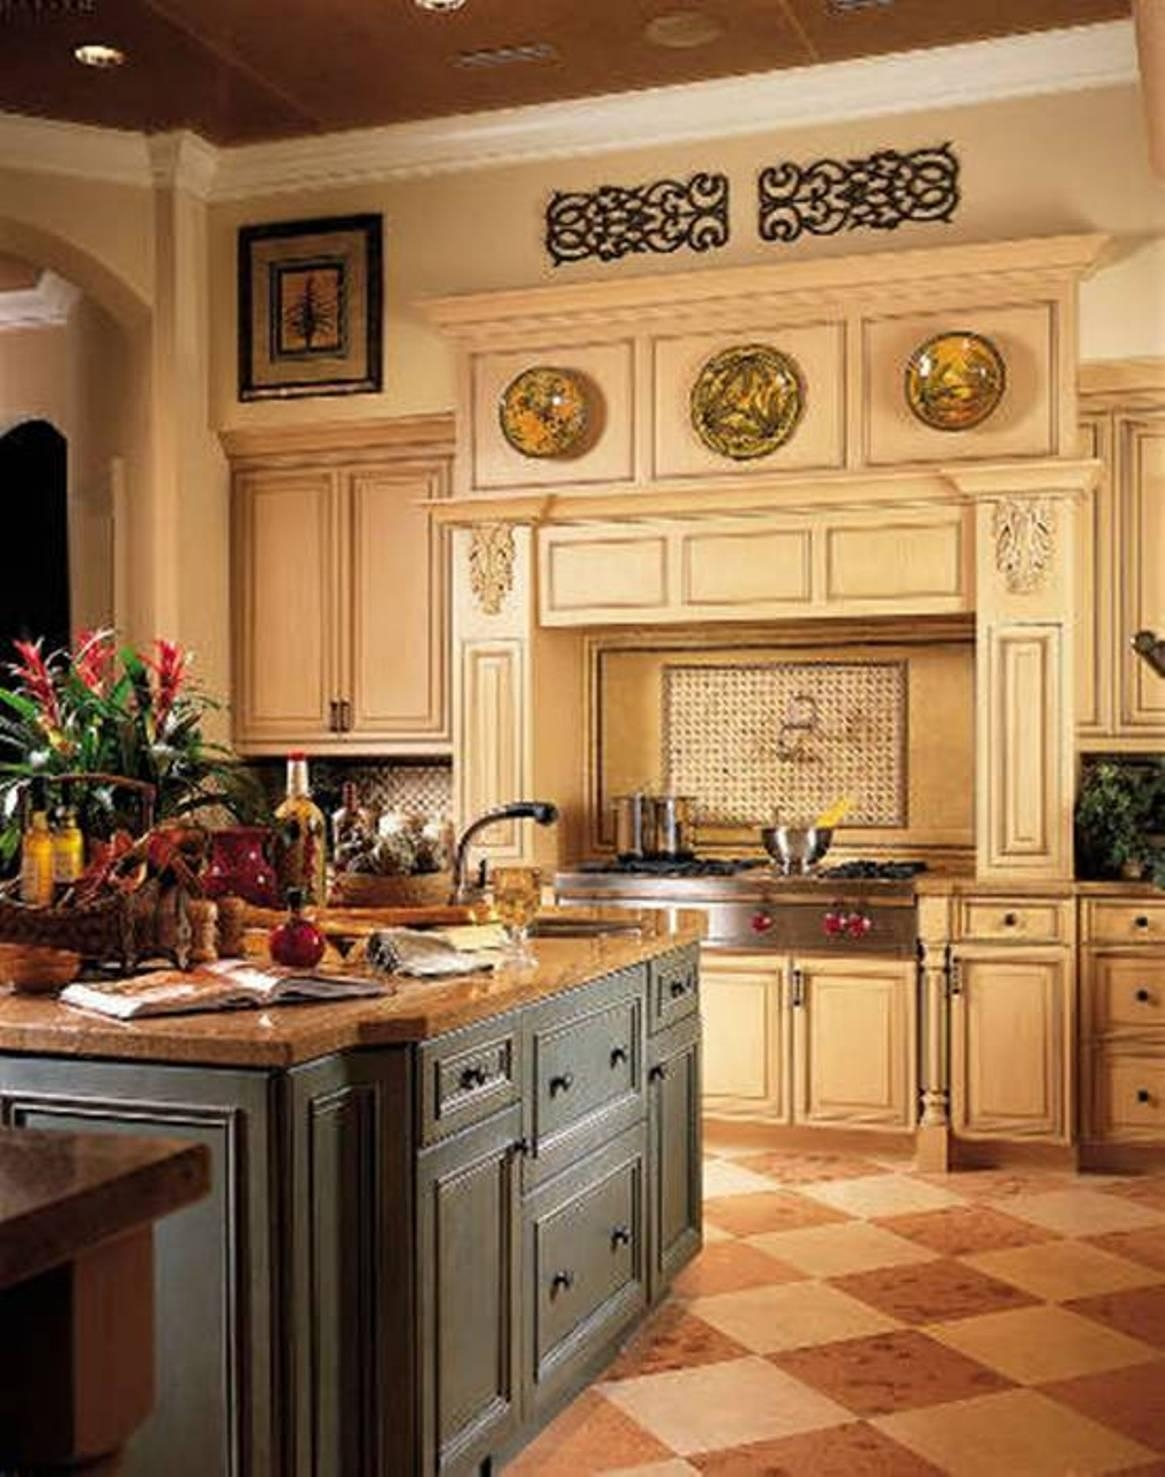 Tuscan Decorating Kitchen With Plates And Wrought Iron Decor And Pertaining To Tuscan Wrought Iron Wall Art (Image 8 of 20)